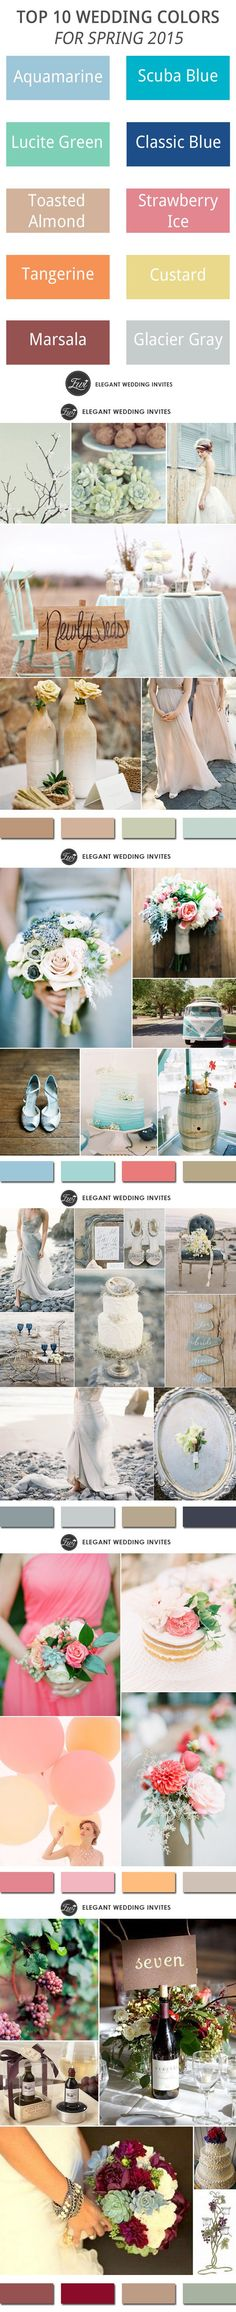 After checking the whole 2015 wedding color trends (check it HERE), let's turn on the spring wedding colors. We'll see a move toward the cooler and softer side for 2015 spring colors, an eclectic, ethereal mix of unde. 2015 Wedding Trends, 2015 Trends, Wedding 2015, Spring Wedding, Our Wedding, Dream Wedding, Wedding Color Schemes, Wedding Colors, Colour Schemes